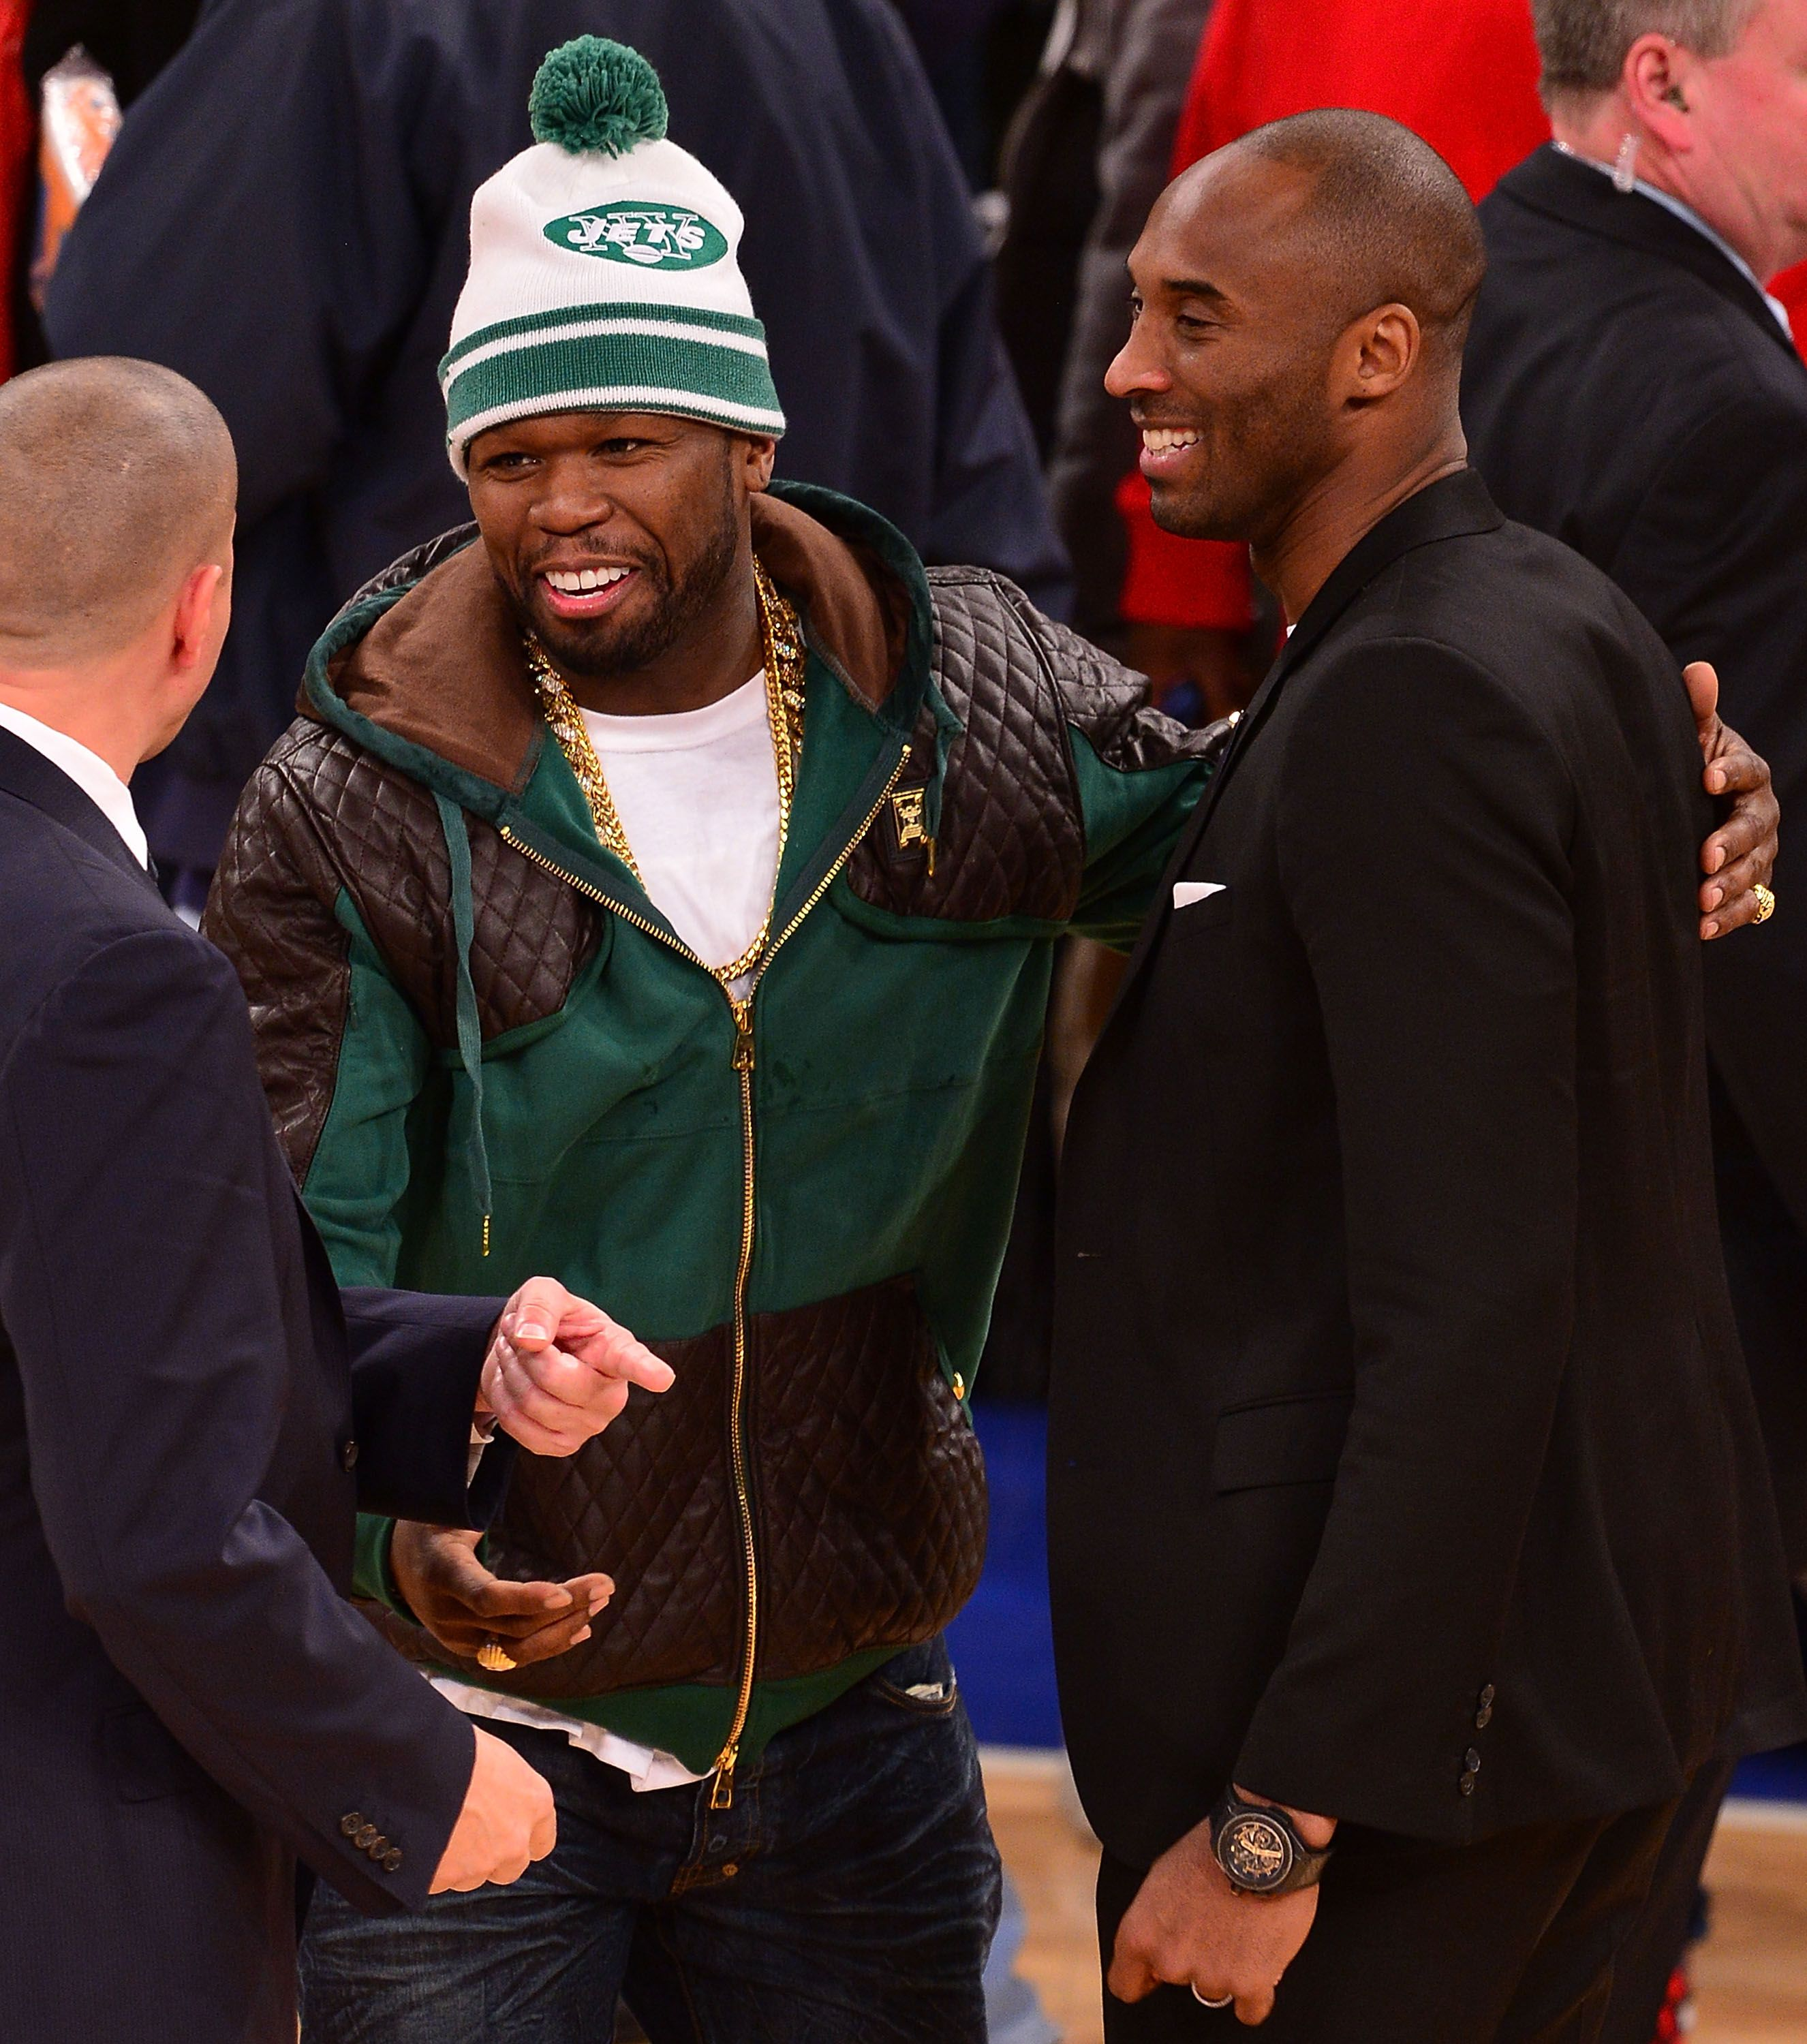 50 Cent and Kobe Bryant share an embrace as they attended the Los Angeles Lakers versus the New York Knicks on January 26, 2014 in New York | Source: Getty Images (Photo by James Devaney/GC Images)